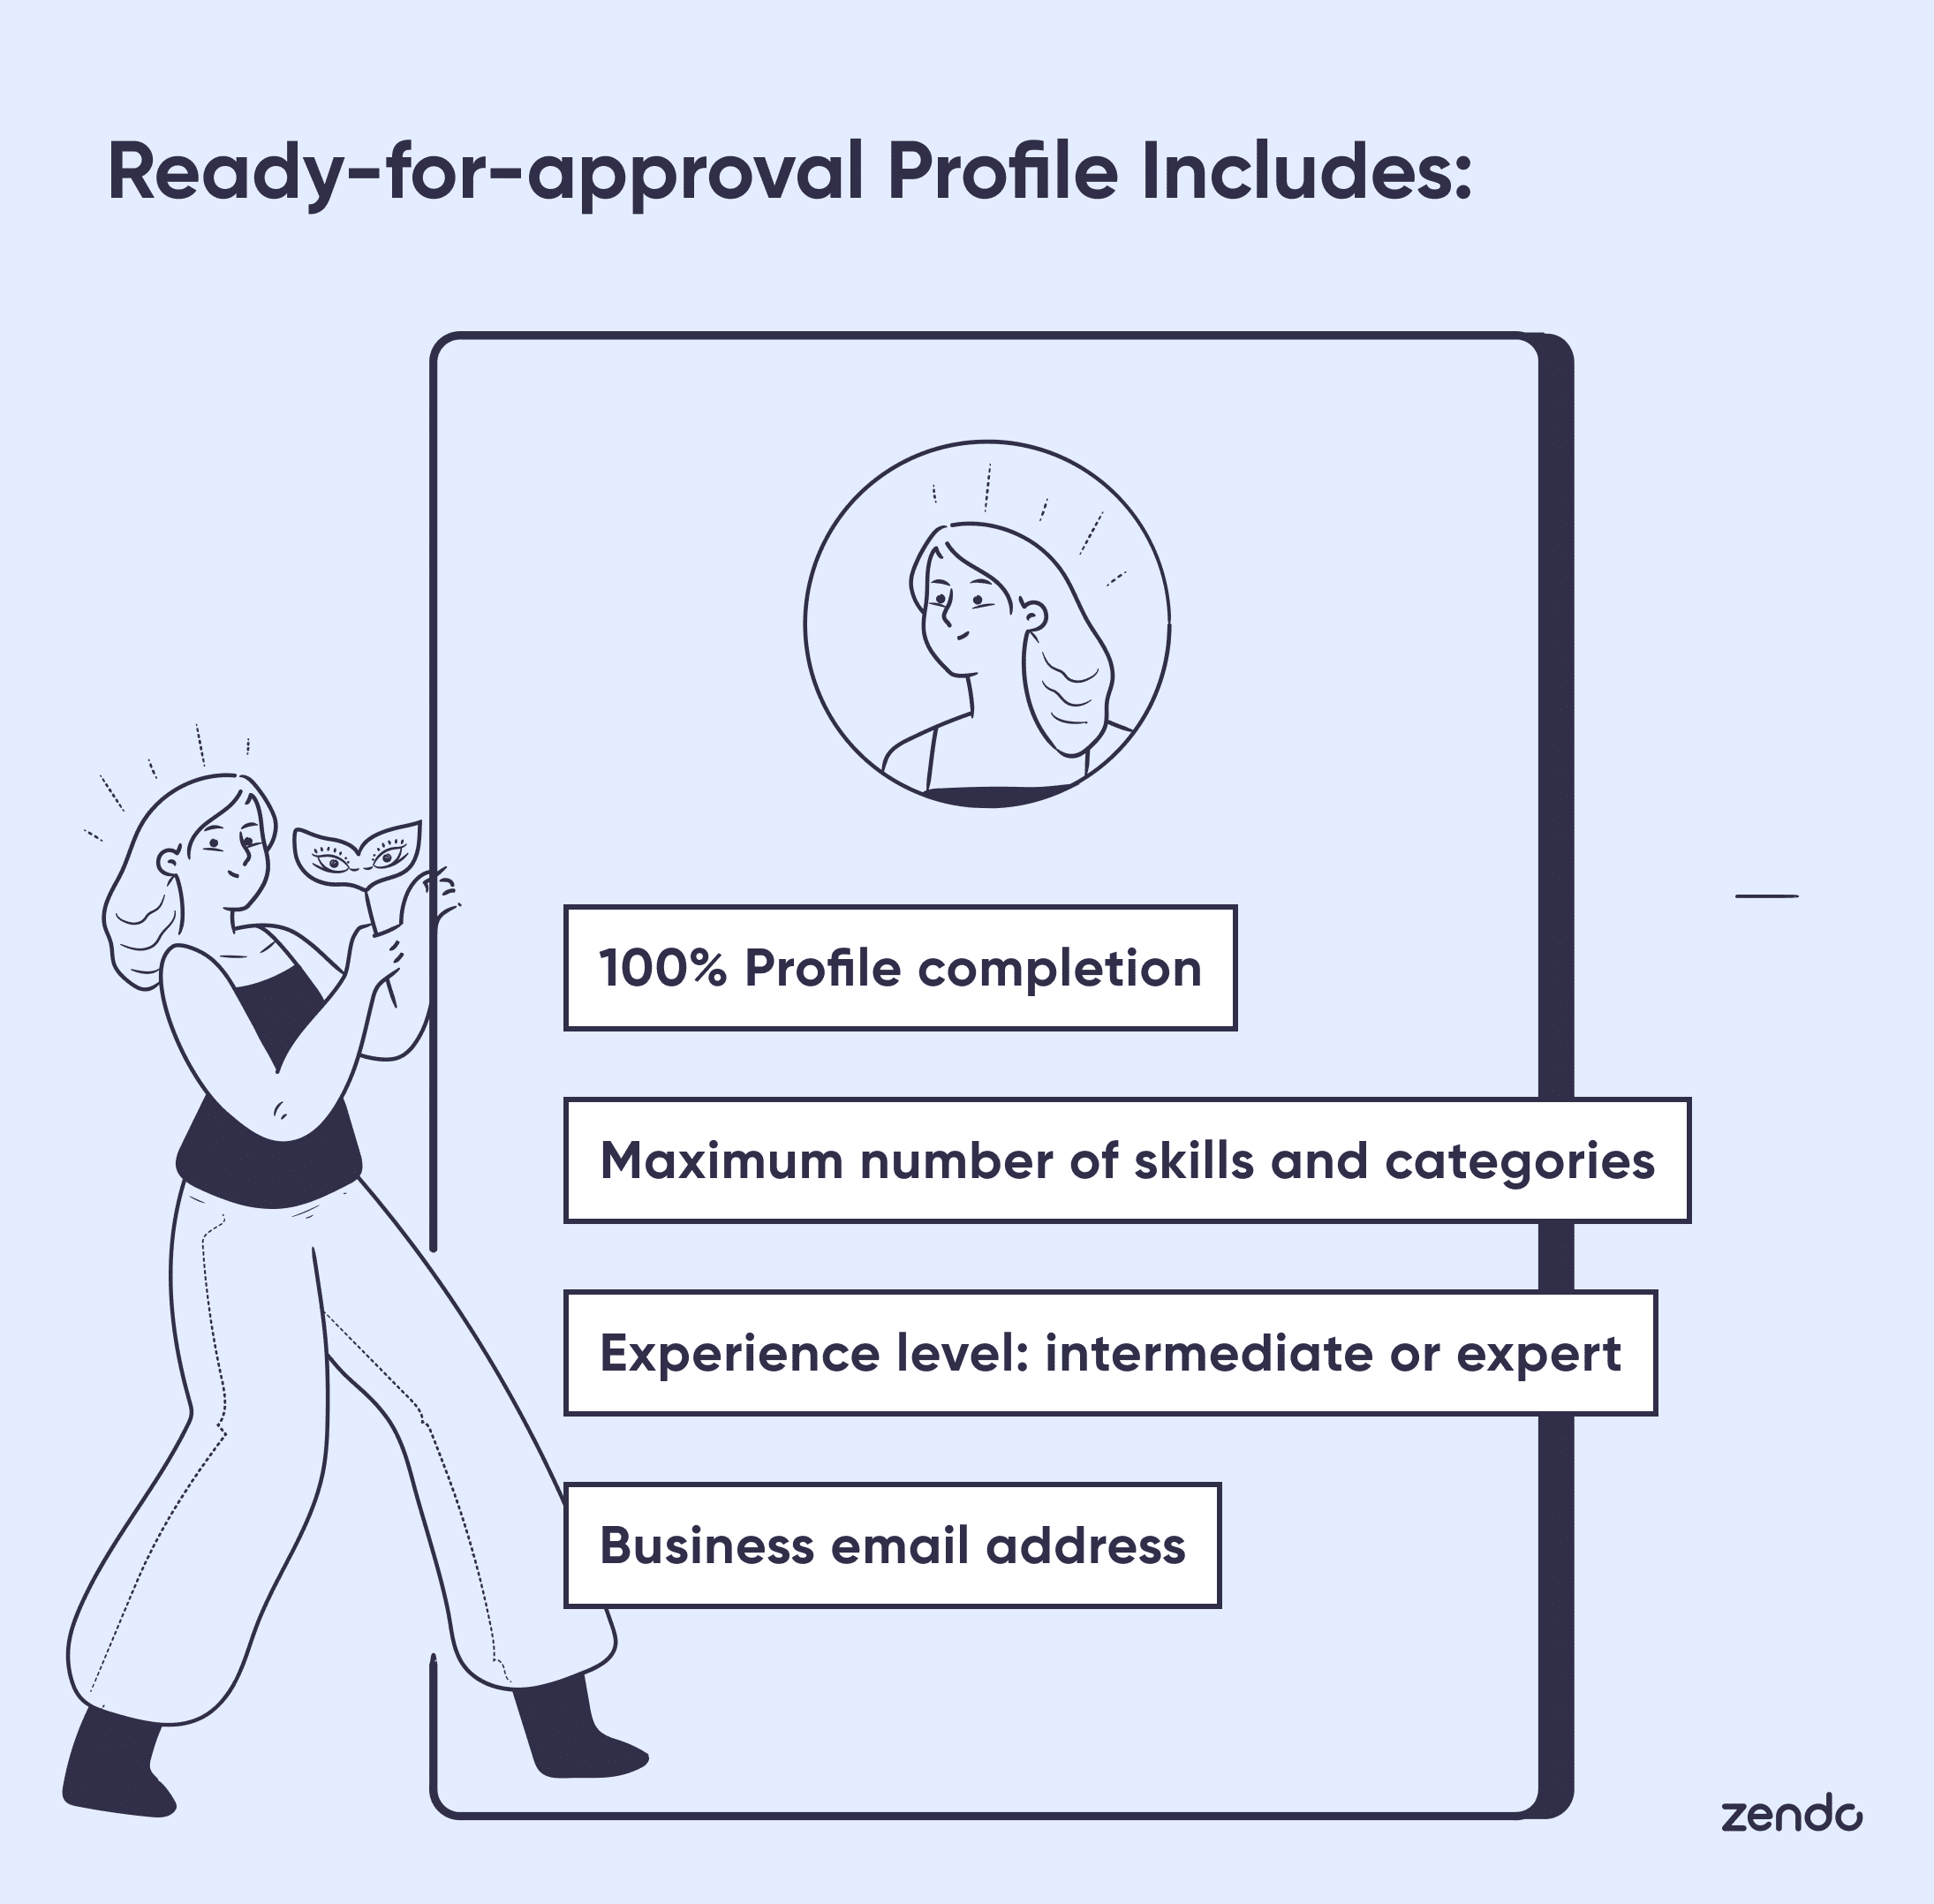 Infographic showing necessary steps to get approved profile on Upwork.